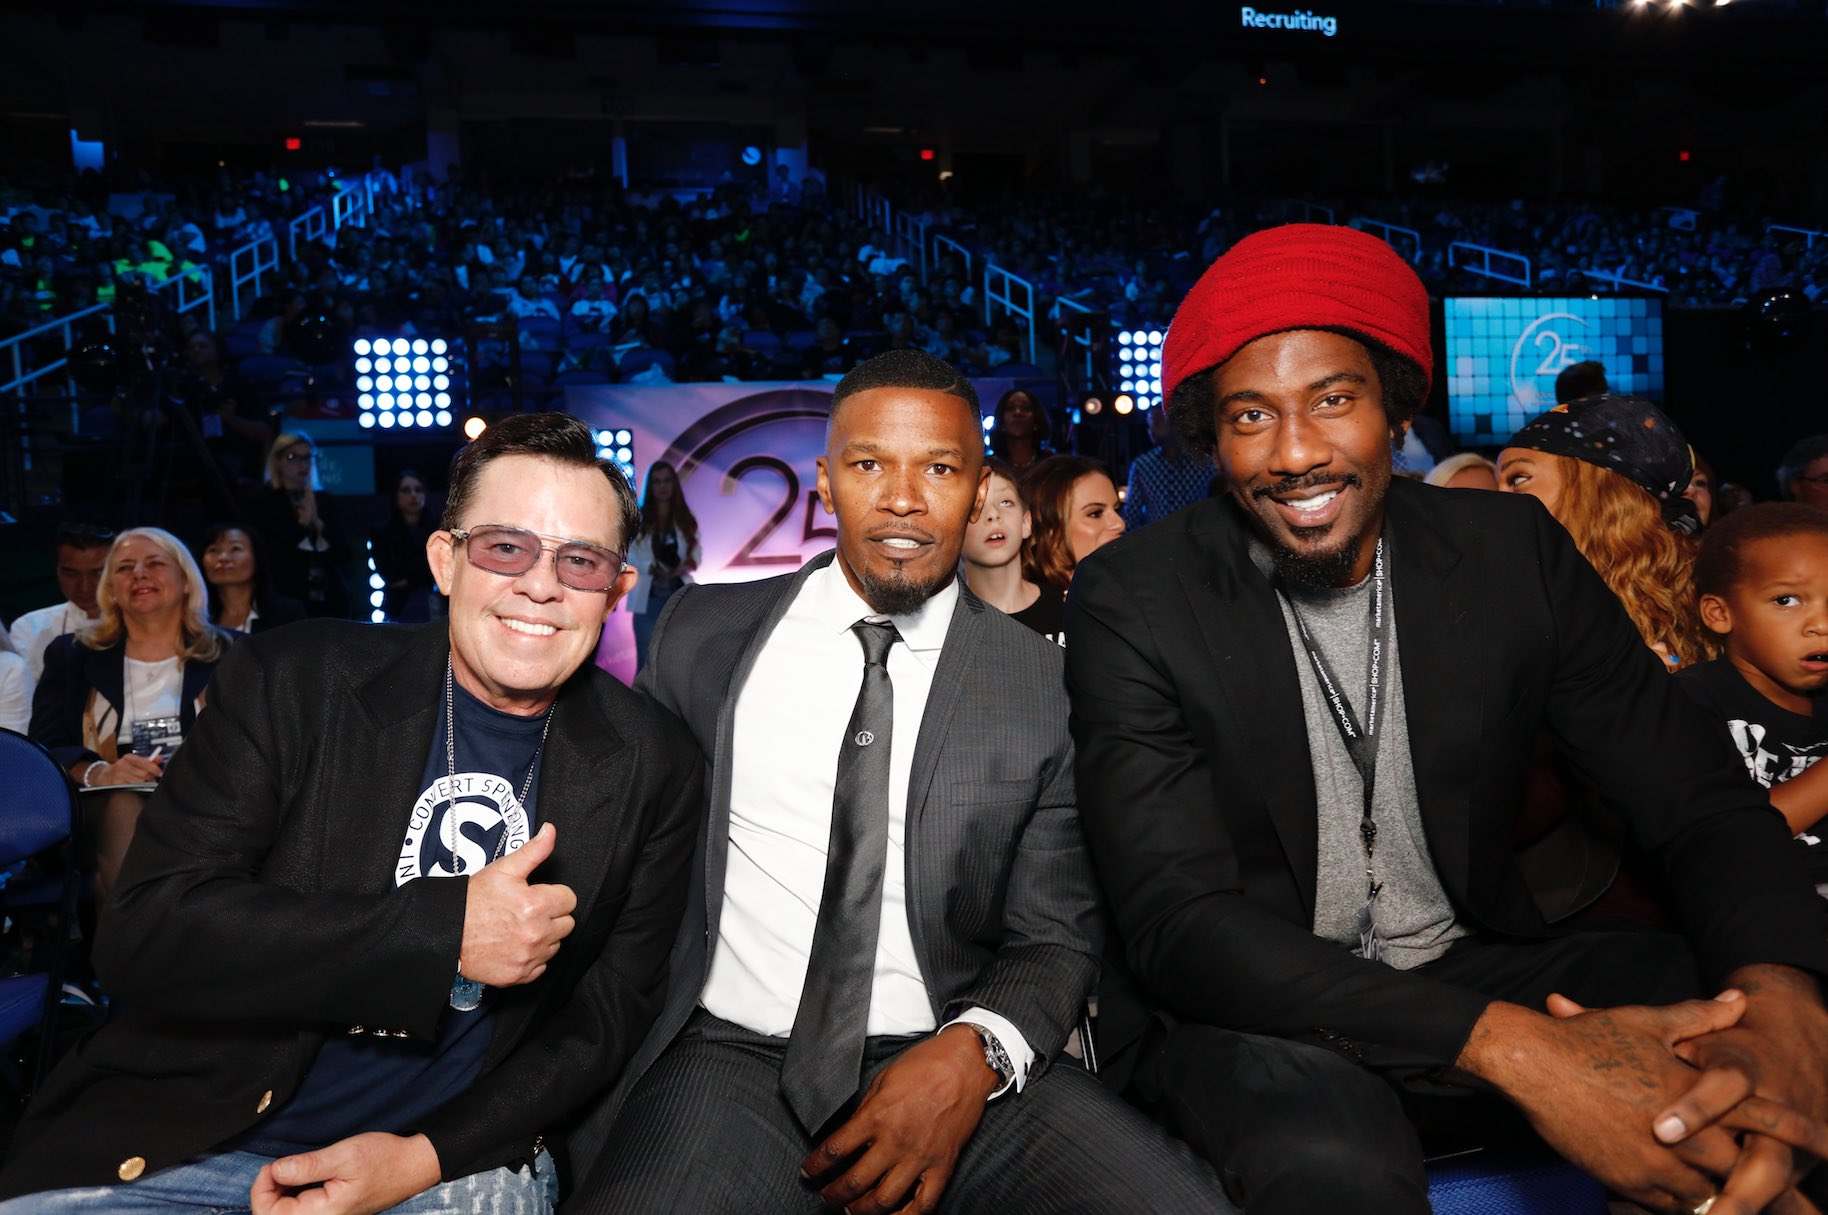 JR Ridinger, Jamie Foxx and Amar'e Stoudemire